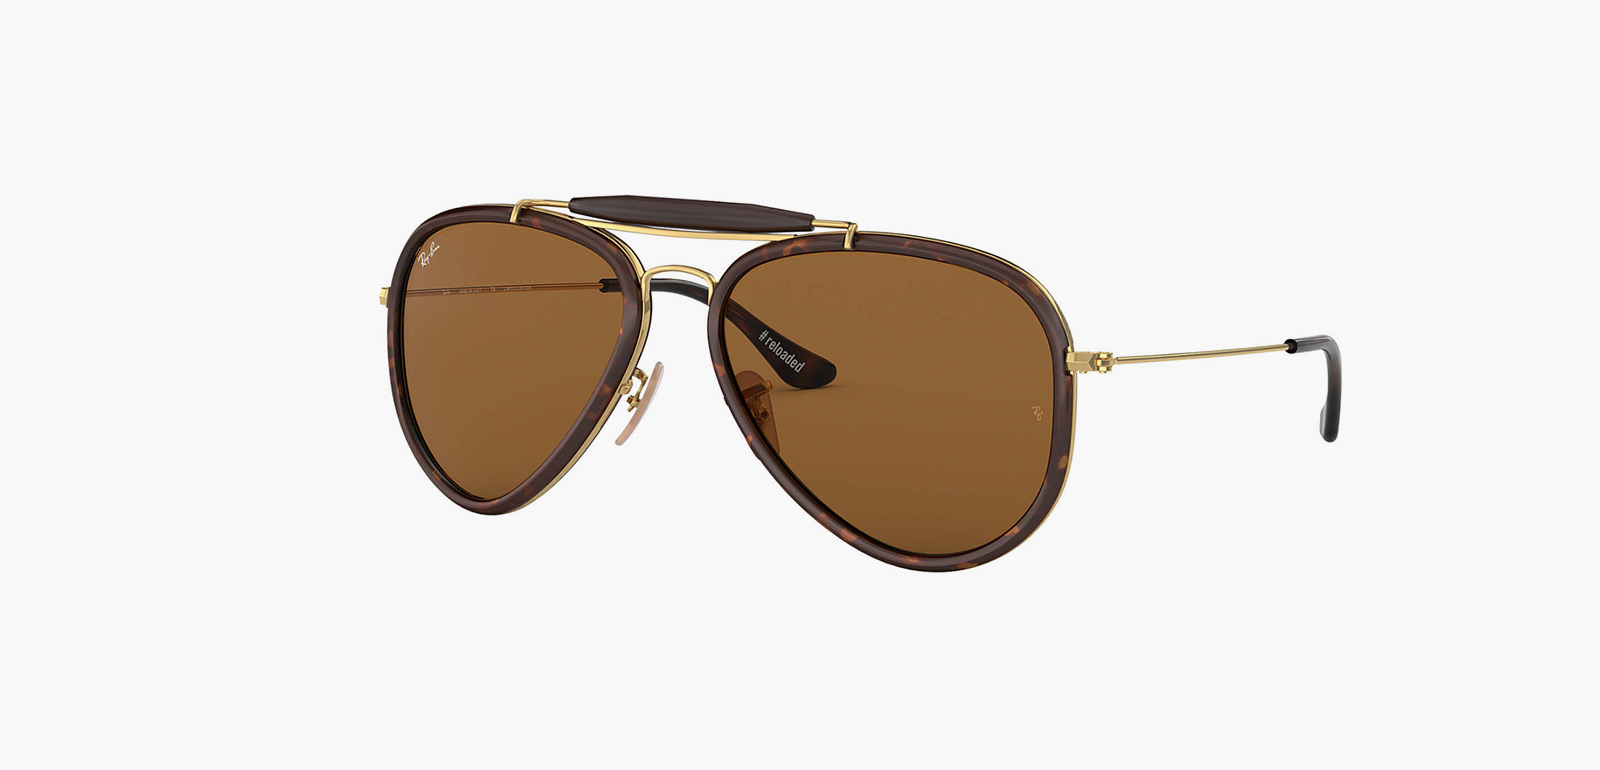 c363e02752 Ray-Ban Outdoorsman Reloaded - IMBOLDN